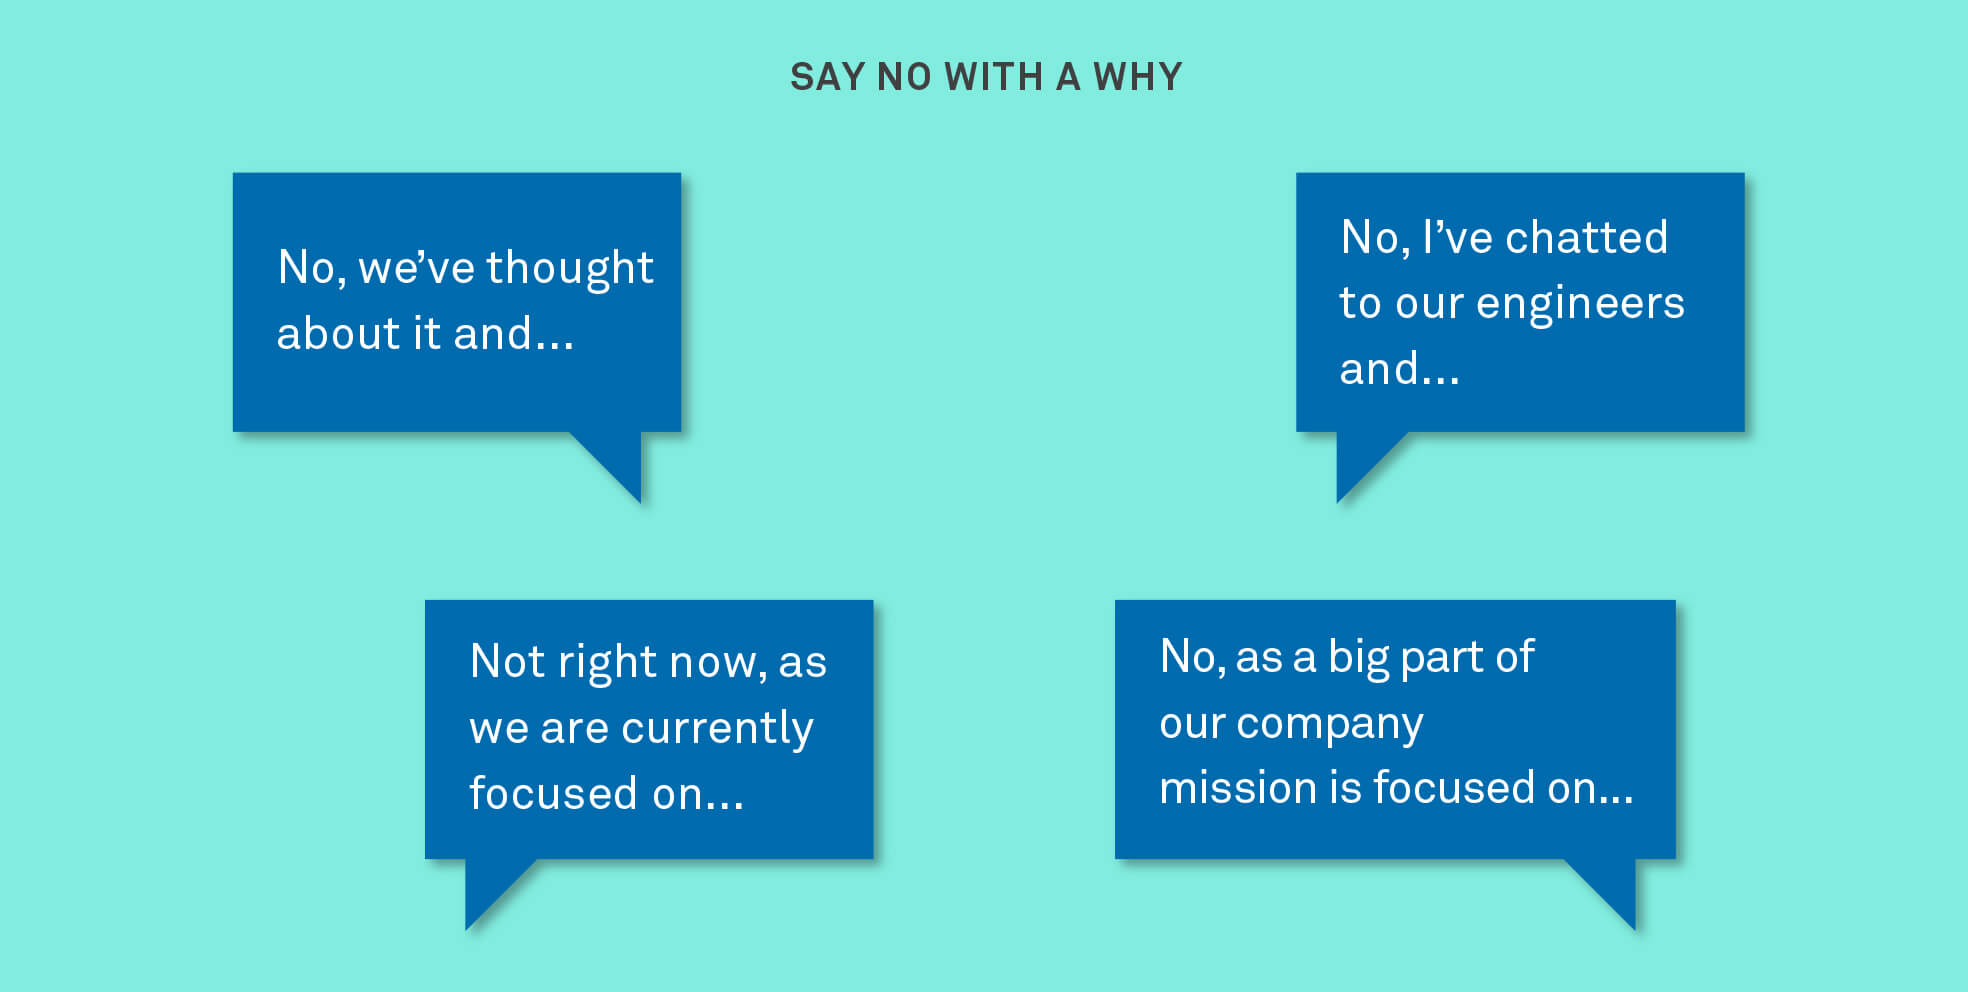 Examples of how to give context to customers while still saying no